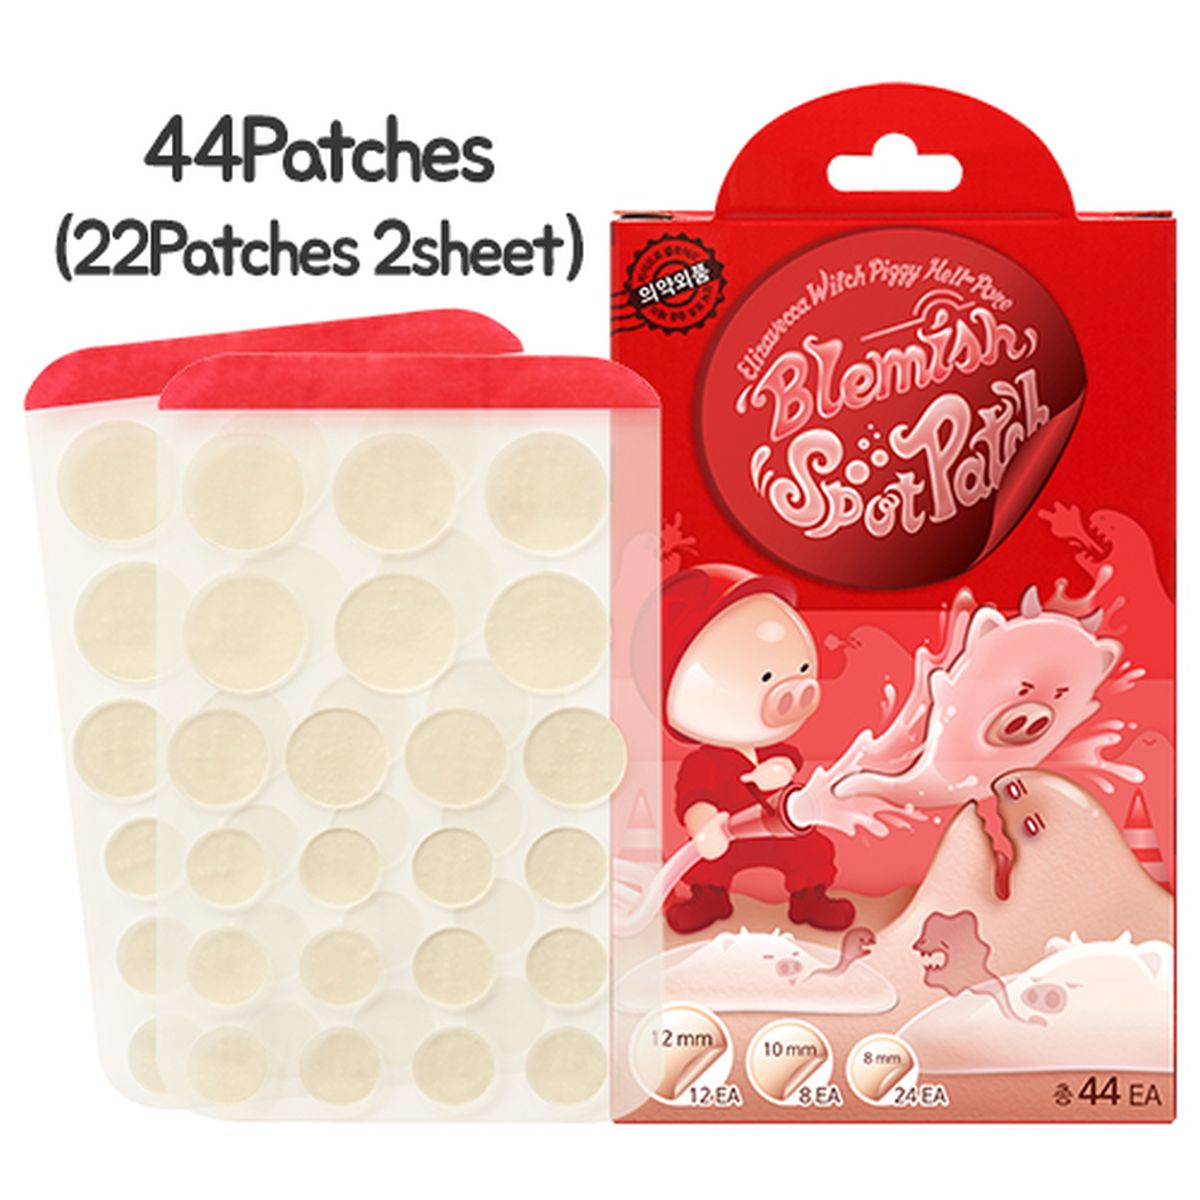 Патчи от прыщей Elizavecca Witch Piggy Hell Pore Blemish Spot Patch - 44 шт